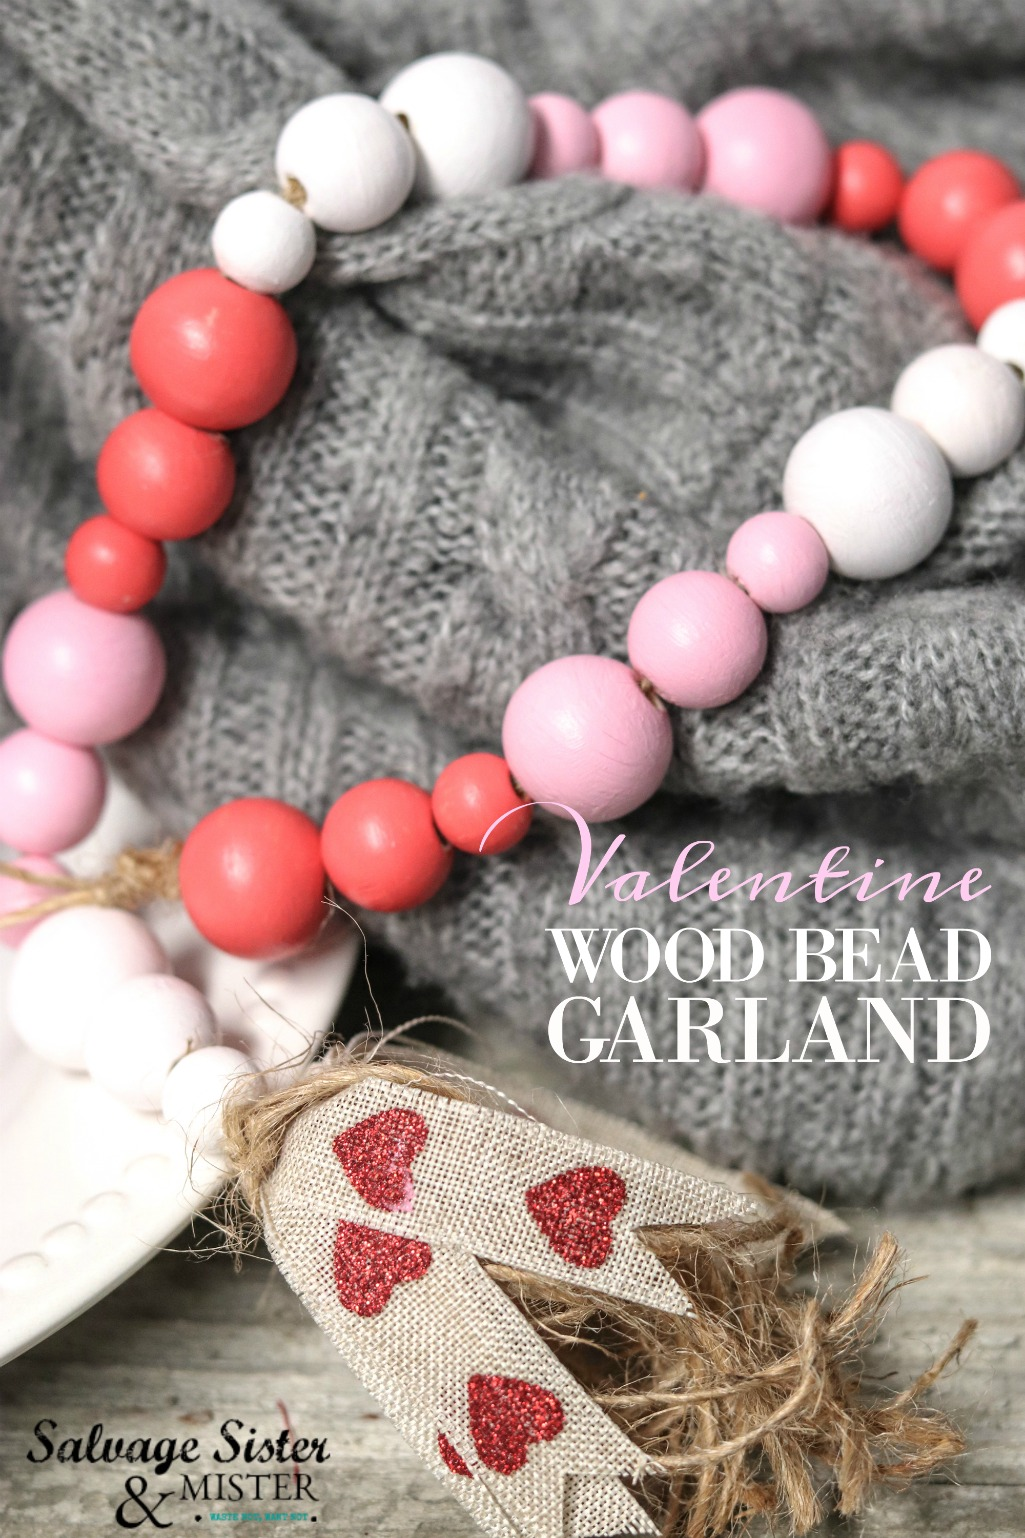 How to - Make this Valentine wood bead garland for your home decor or to give as a gift. This easy craft makes a fun addition to your farmhouse style and easily adds rustic charm to your valentine decor. Get the full tutorial on salvagesisterandmister.com